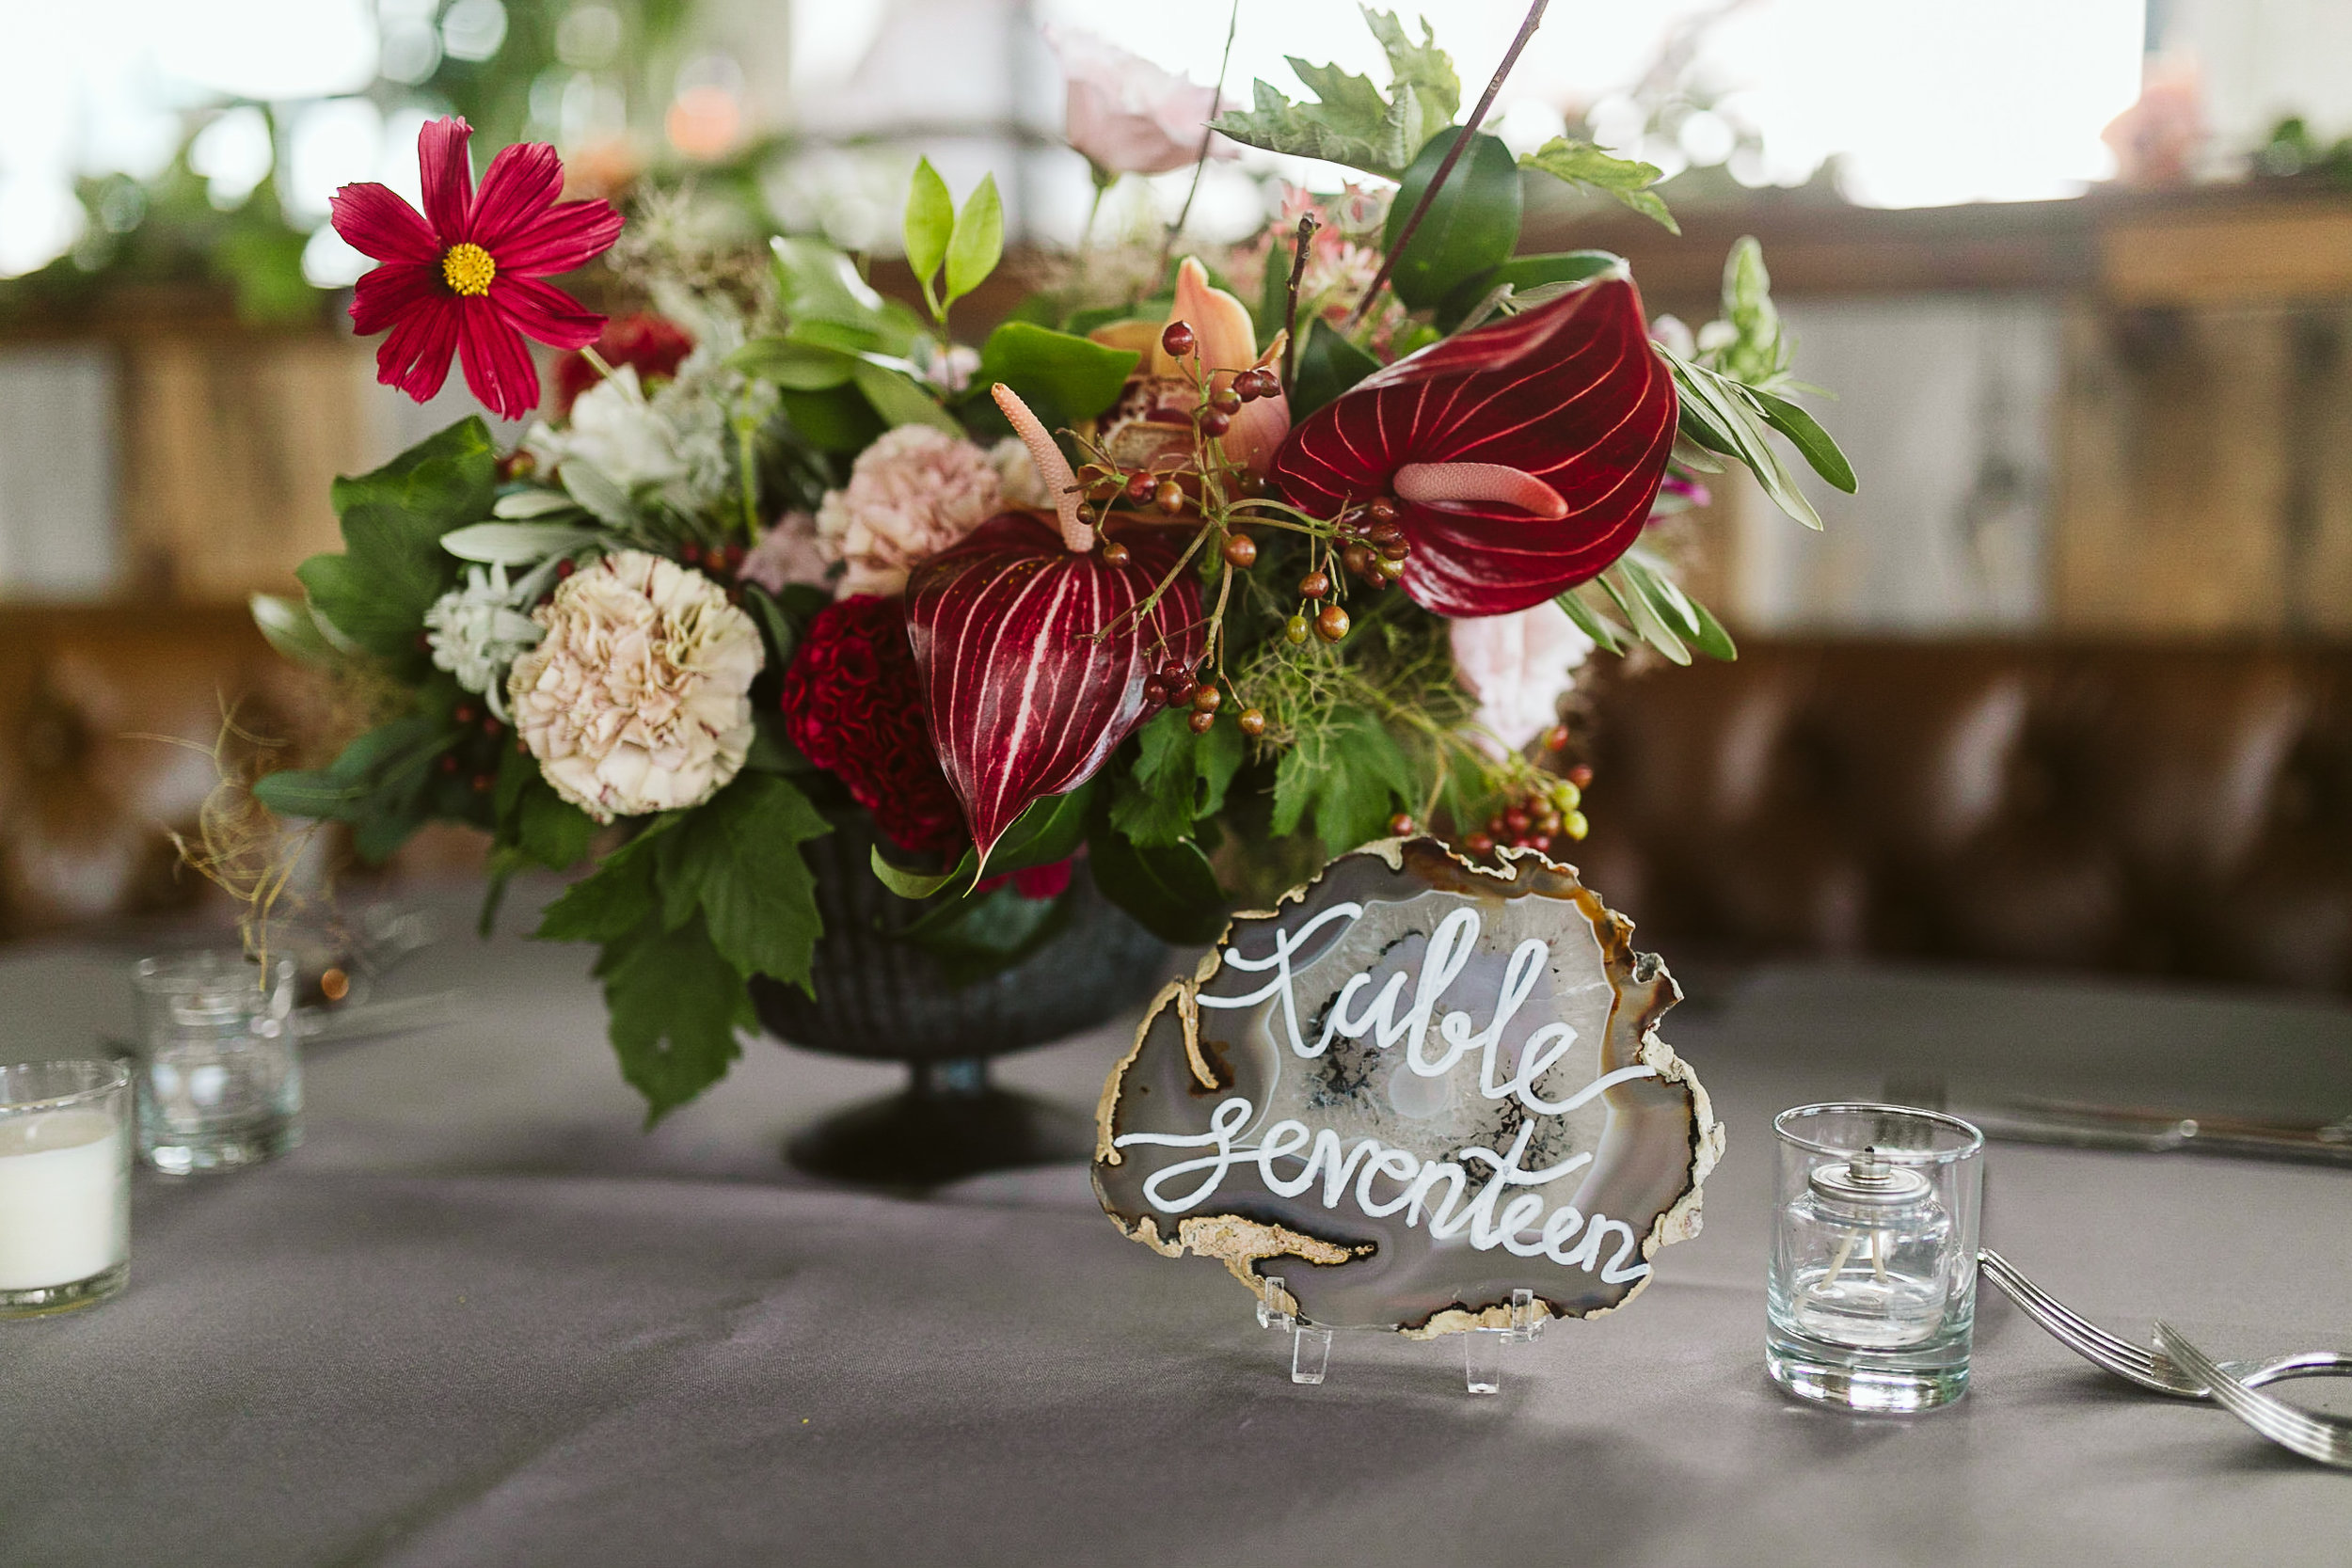 The reception details at this Battello Wedding in Jersey City, NJ